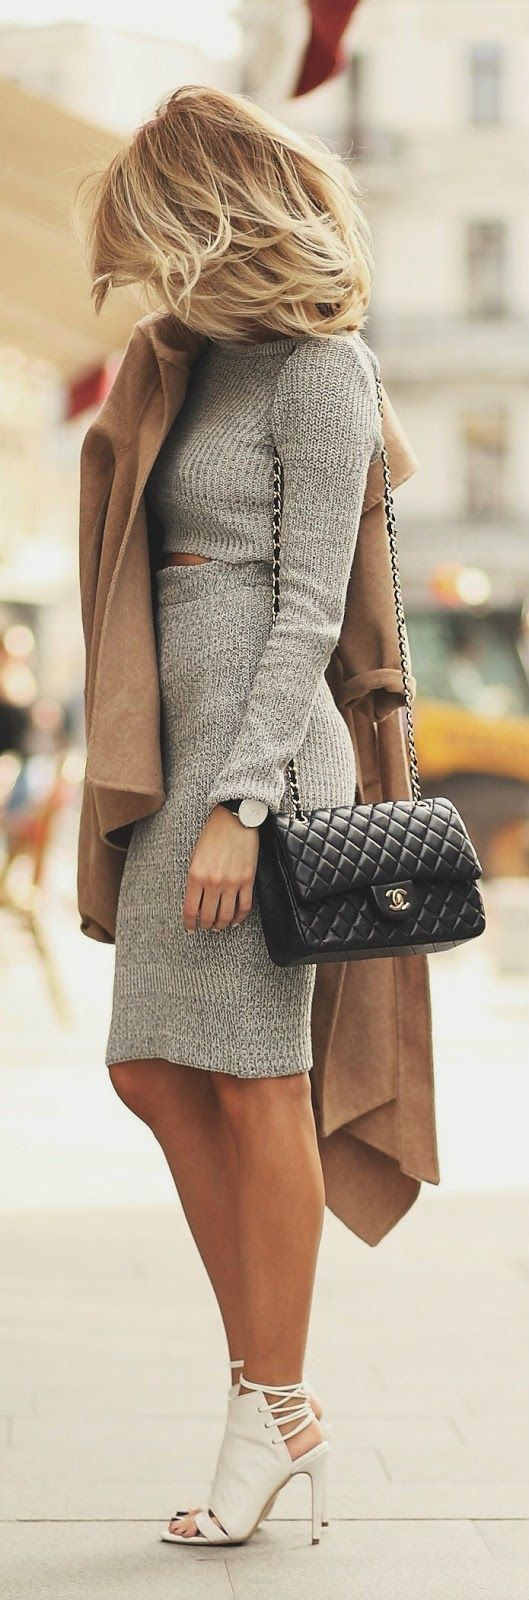 How to Wear Crop Tops In Winter – Fashion Style Magazine - Page 2